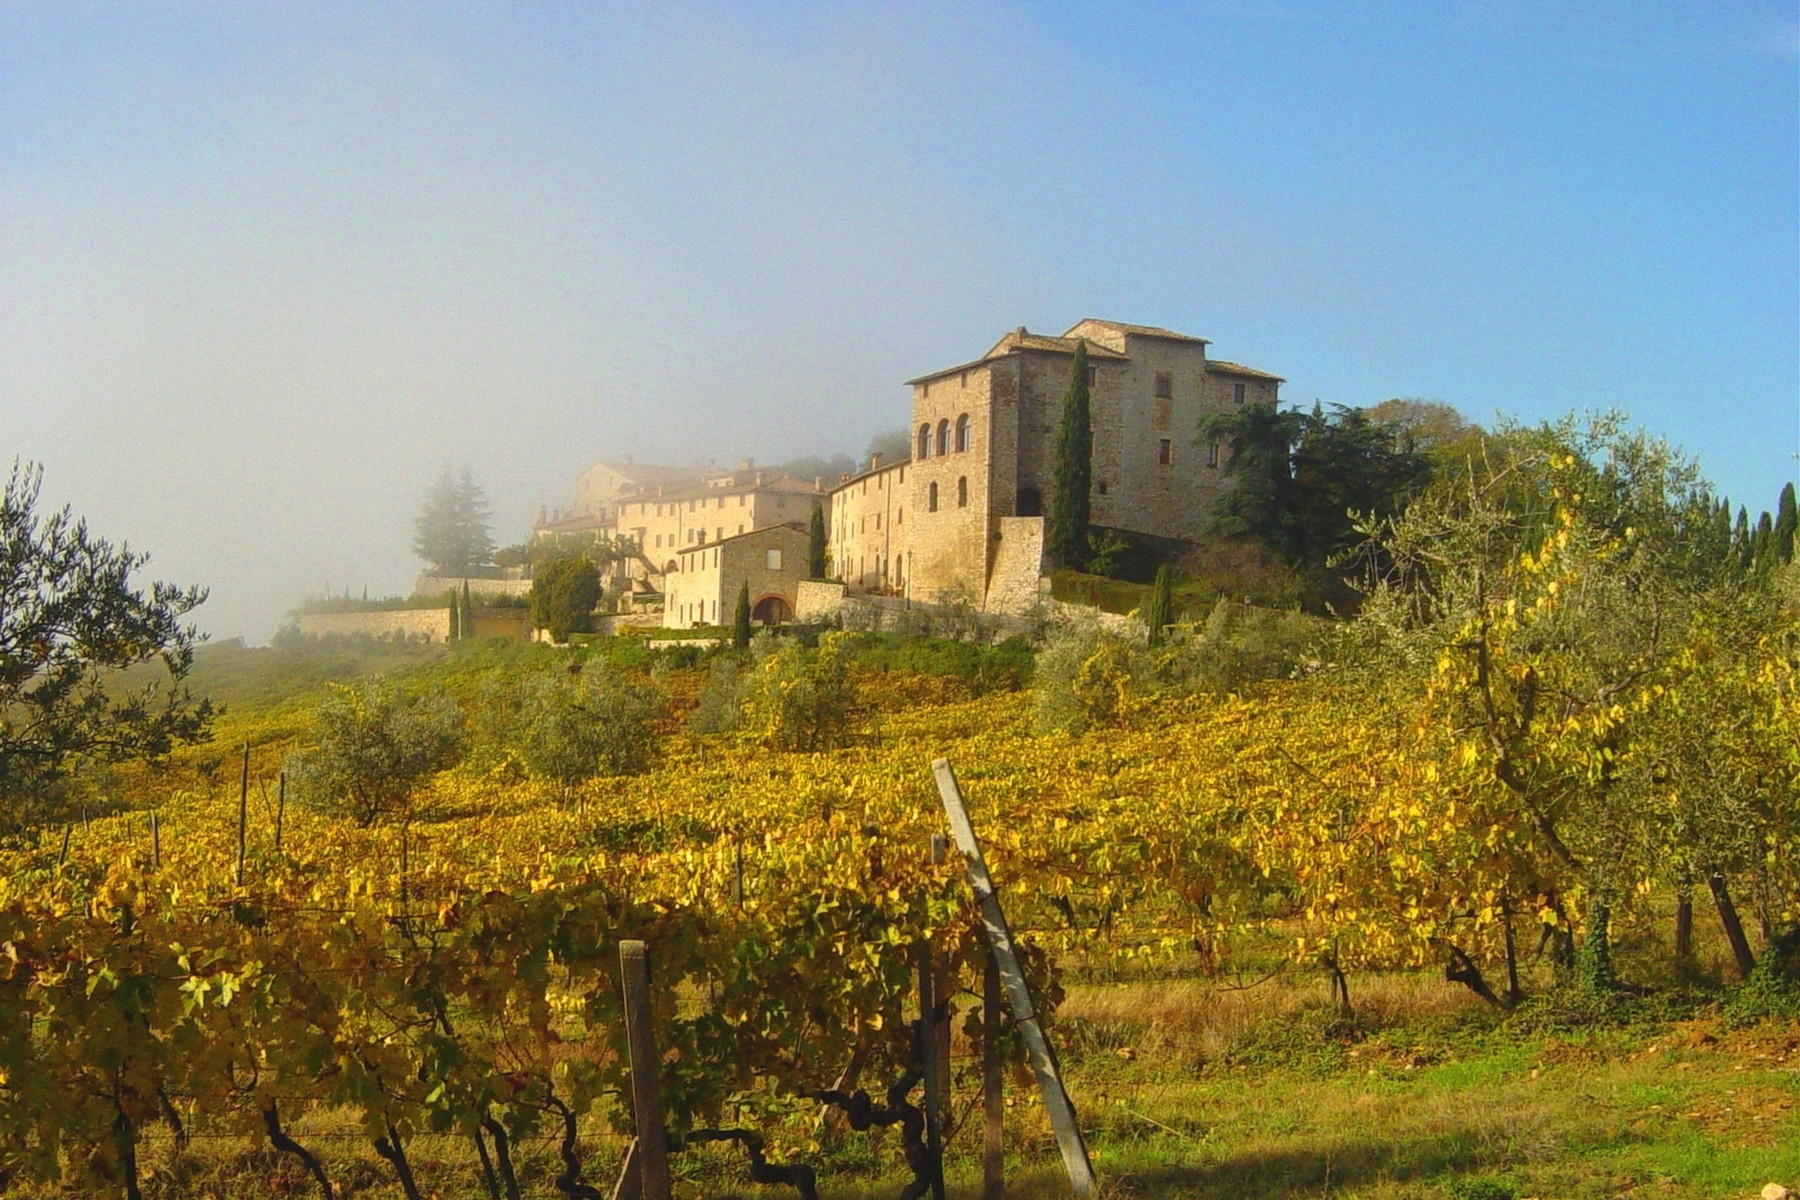 Single Family Home for Sale at Historic castle in Chianti with vineyard Gaiole In Chianti, Siena, 53013 Tuscany, Italy